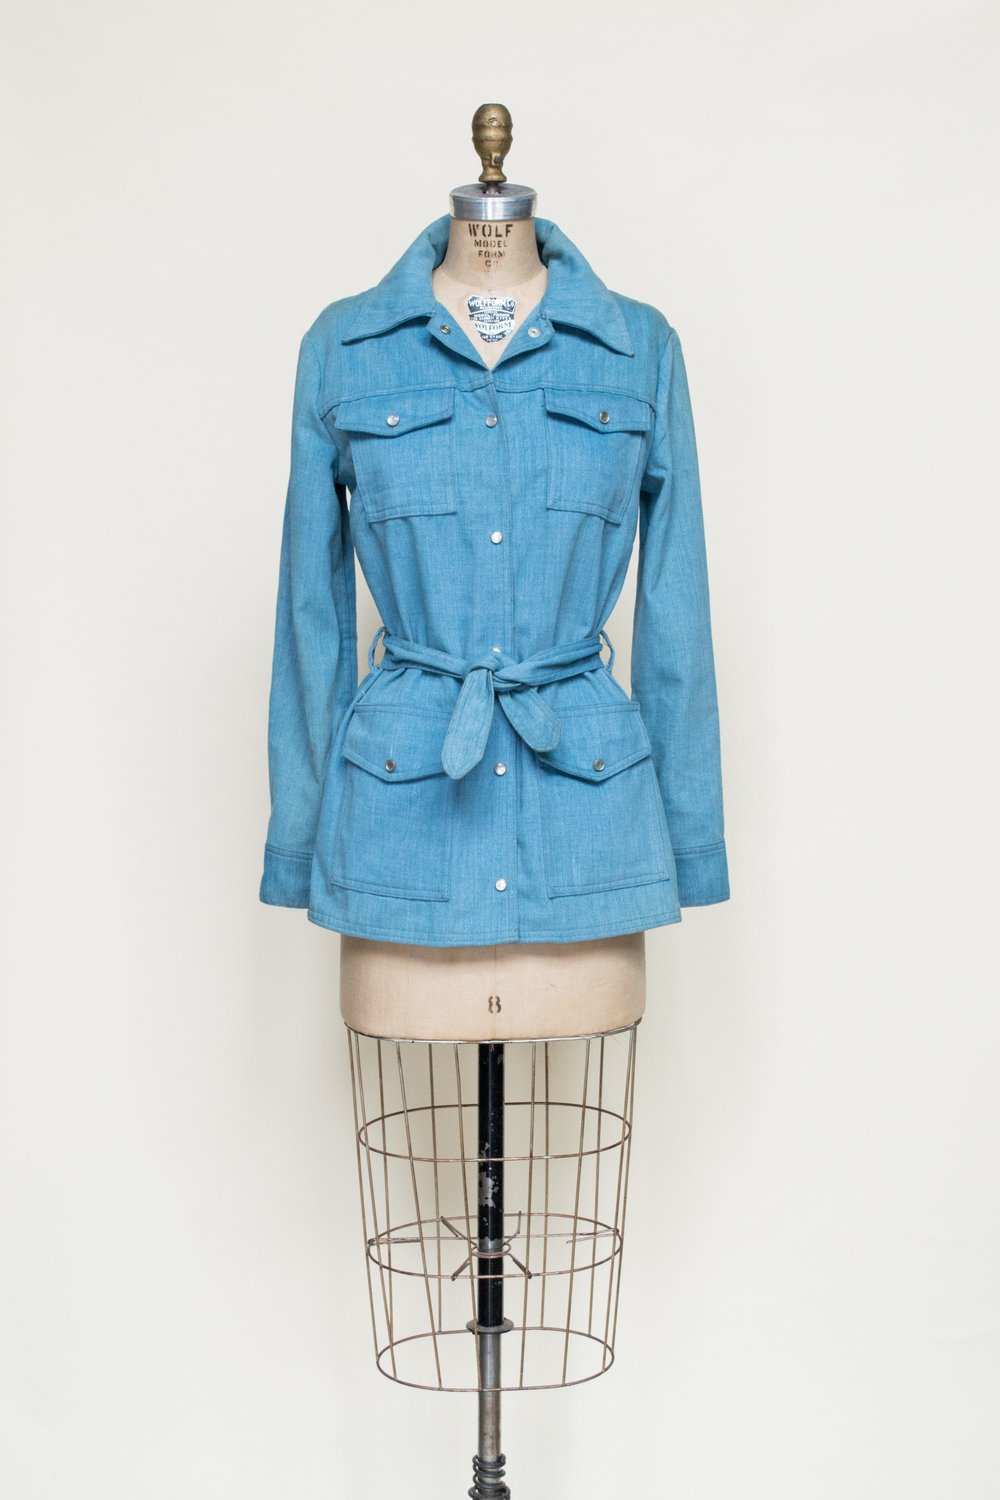 1960s denim jacket from Dalena Vintage